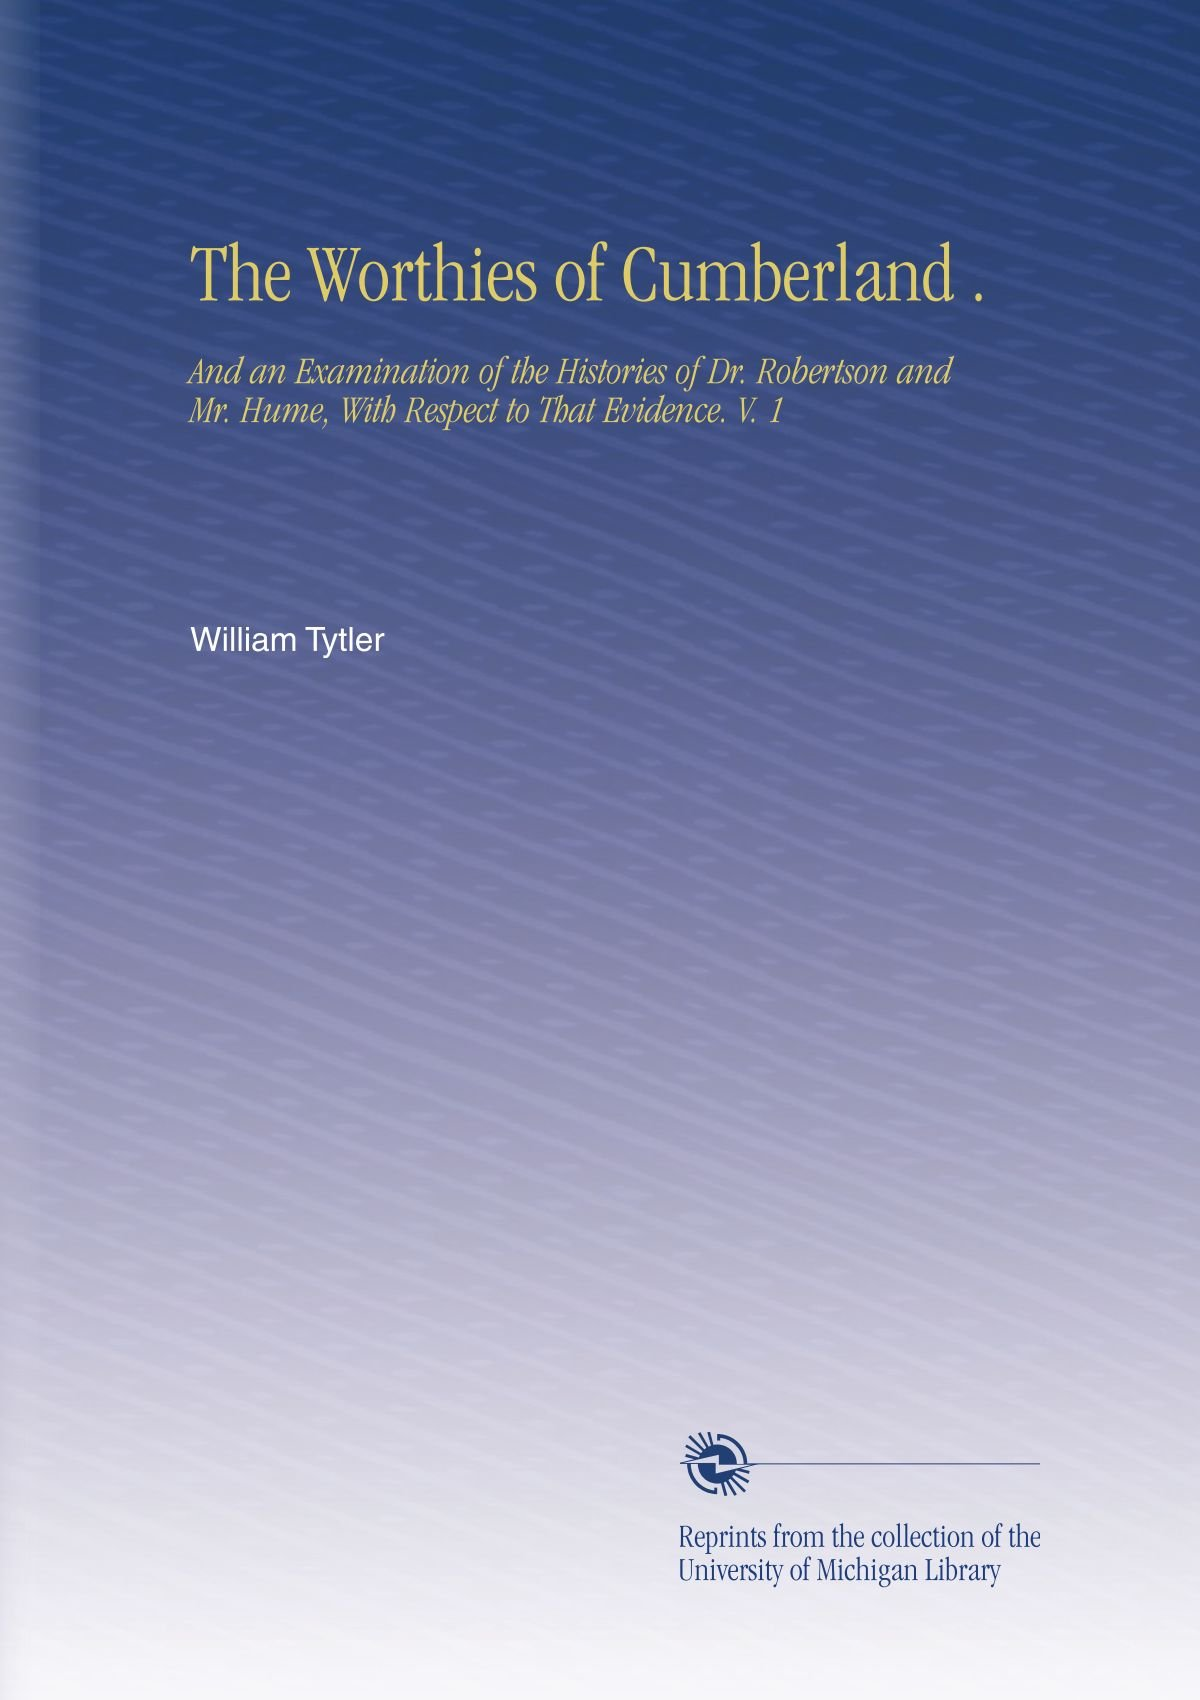 Download The Worthies of Cumberland .: And an Examination of the Histories of Dr. Robertson and Mr. Hume, With Respect to That Evidence. V. 1 ebook